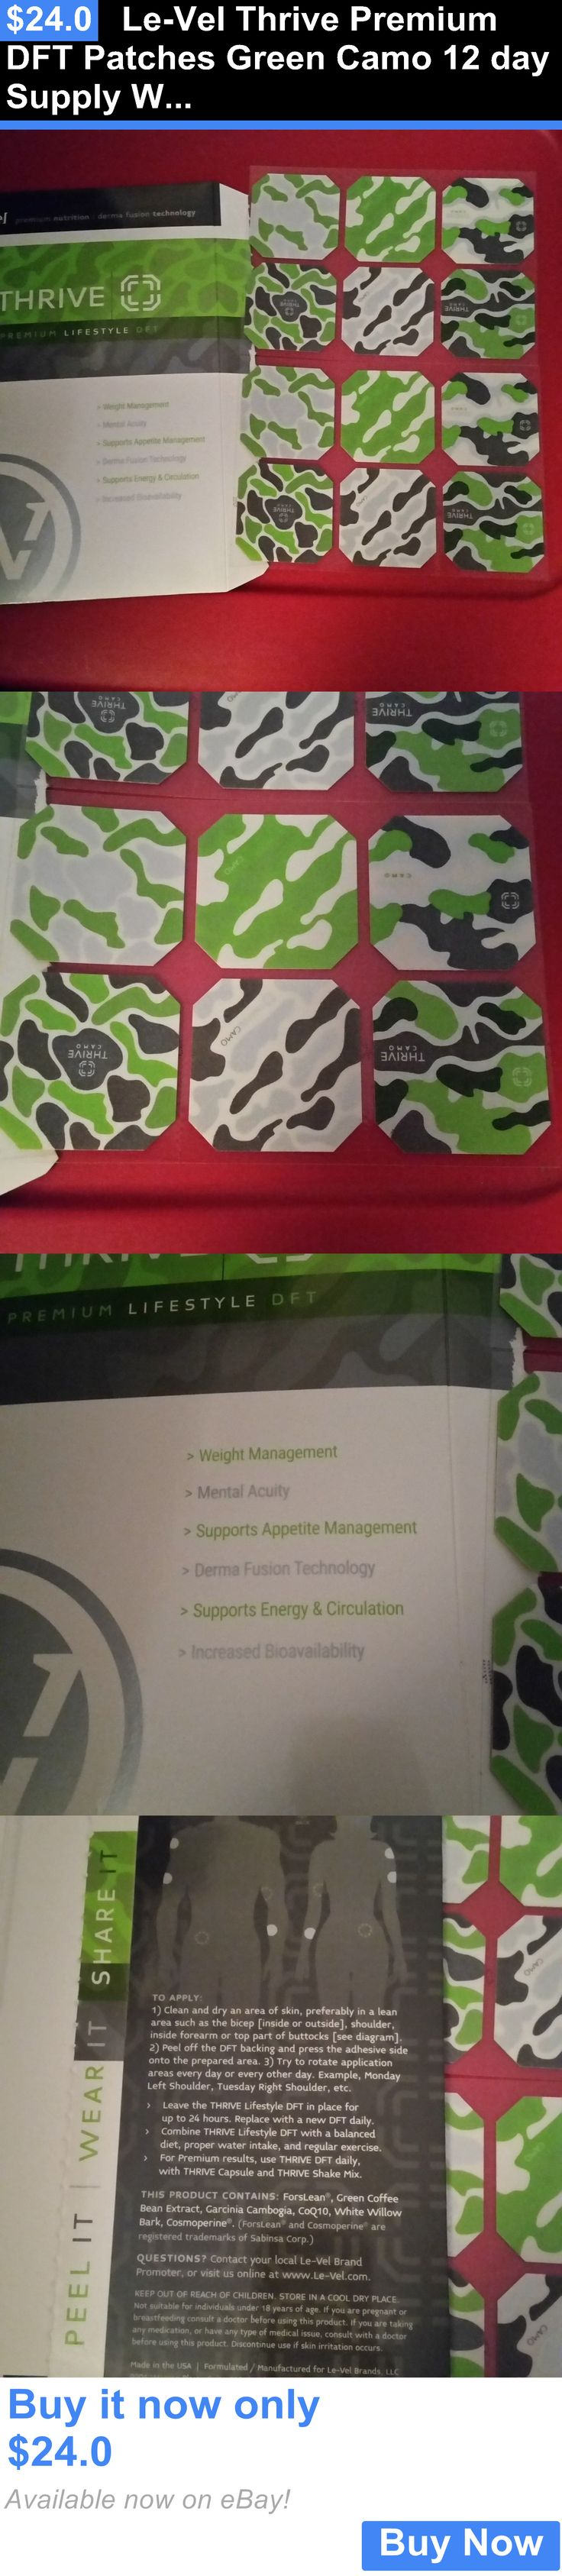 Weight Loss: Le-Vel Thrive Premium Dft Patches Green Camo 12 Day Supply Weight Loss Energy! BUY IT NOW ONLY: $24.0